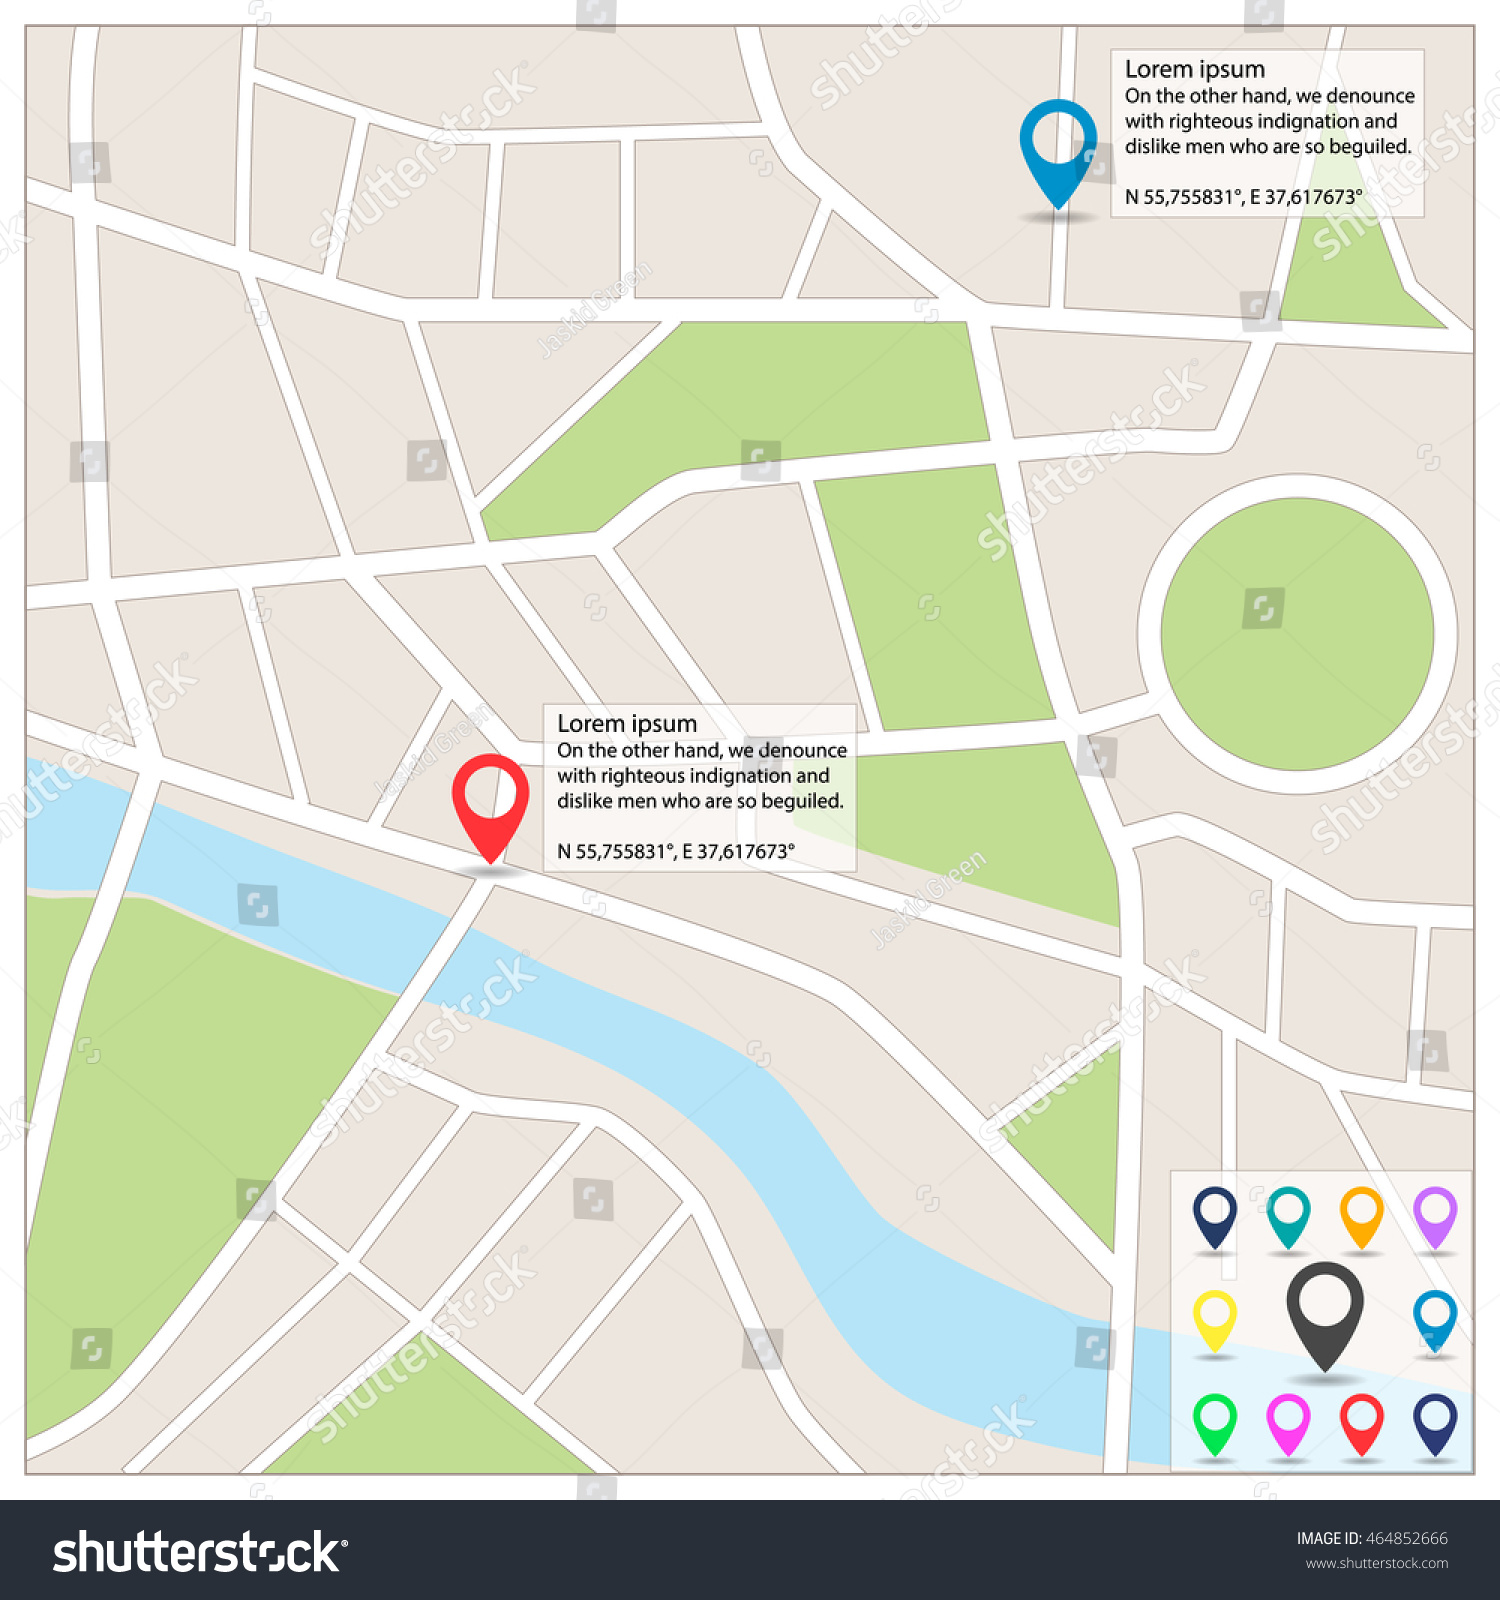 Street Maps Map Pointer Icons City | Royalty-Free Stock Image on state map, latitude map, address number map, address finder map, find locations on a map, city map, address plot map, address layout,